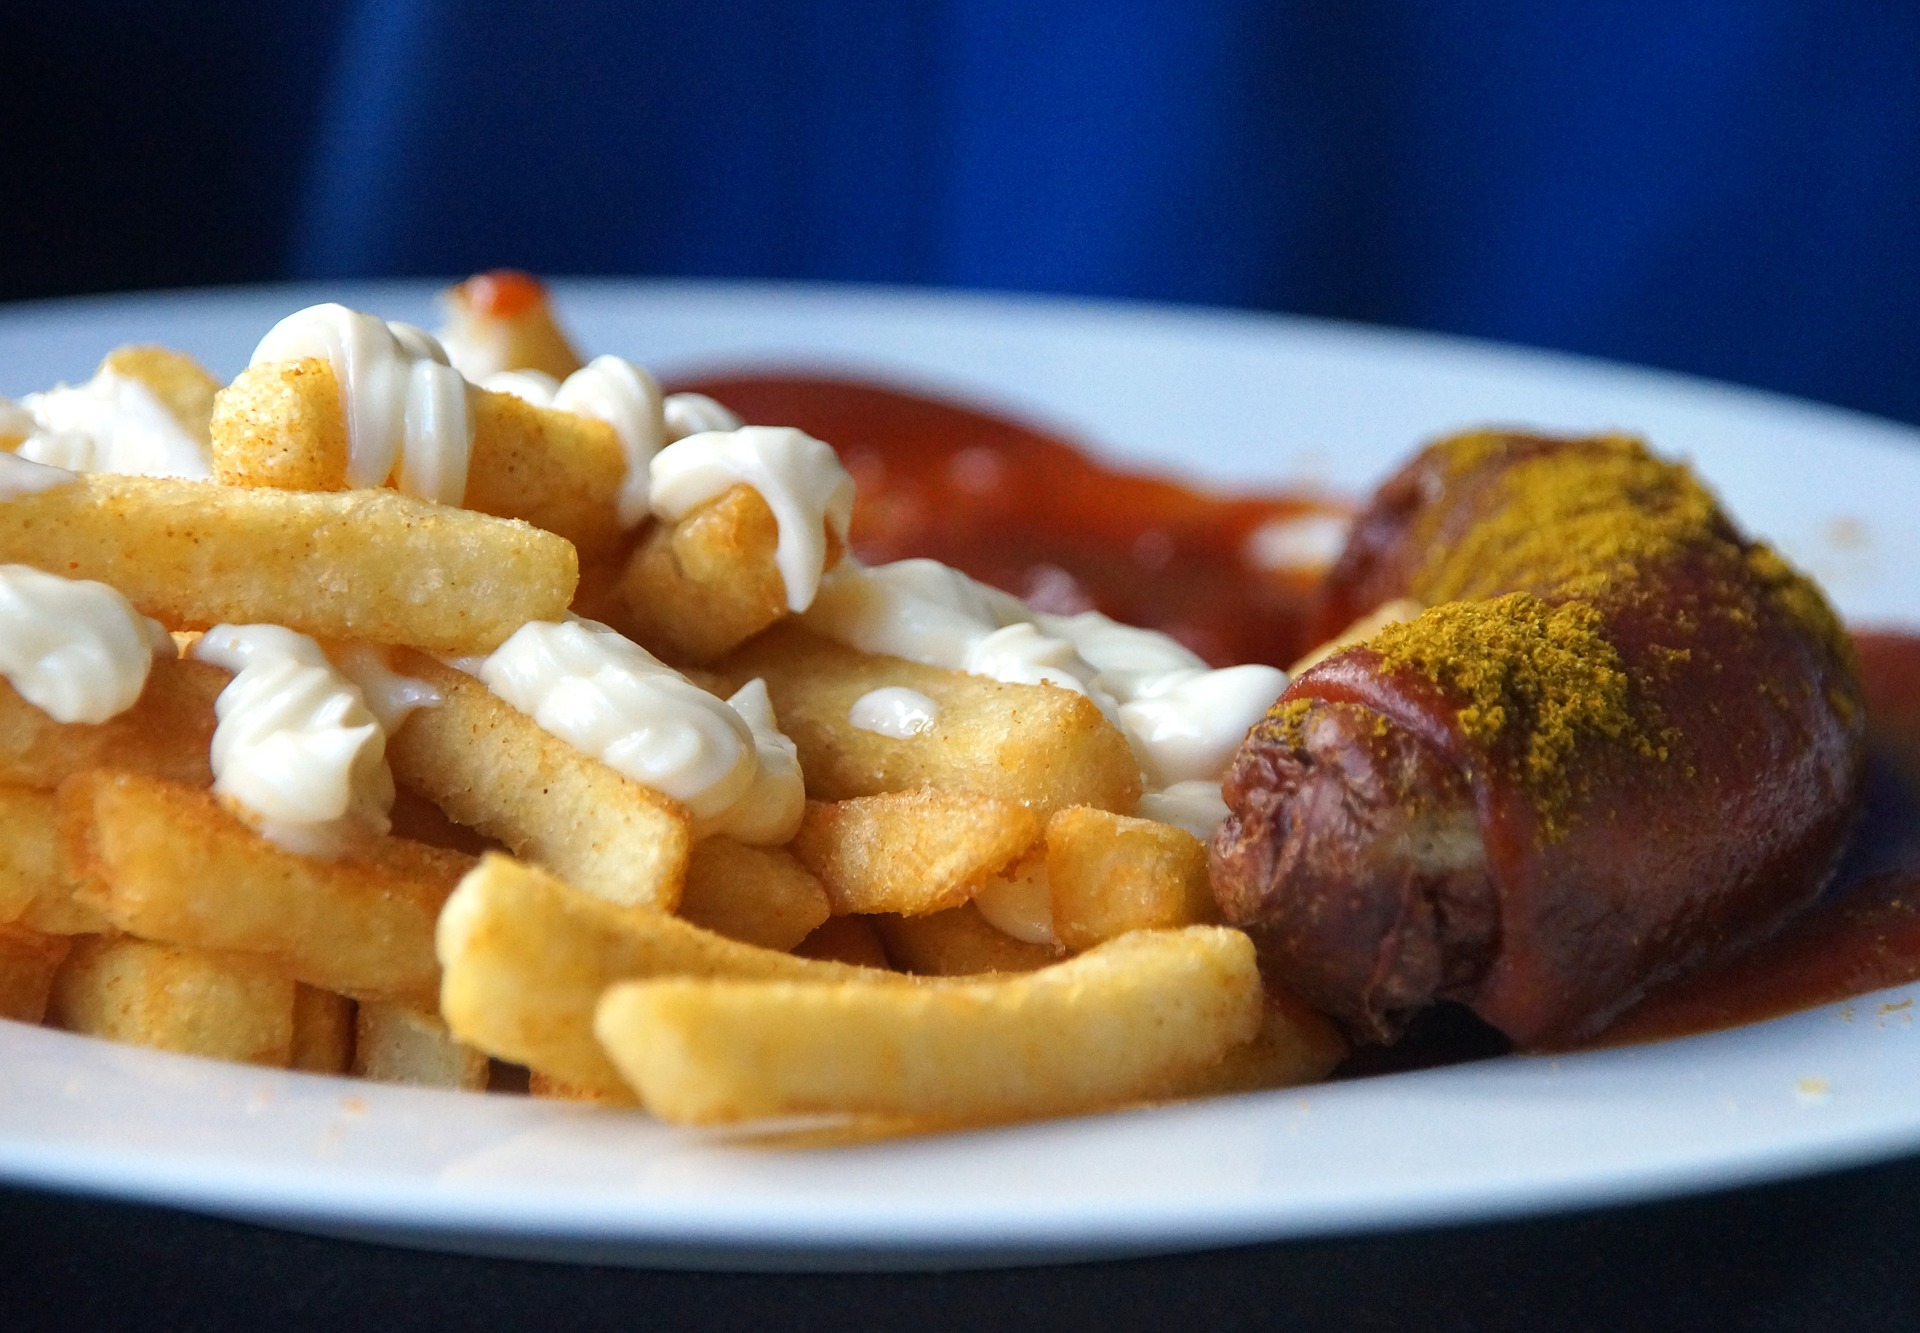 Sausage, fries, ketchup, and mayo - a high carb meal.